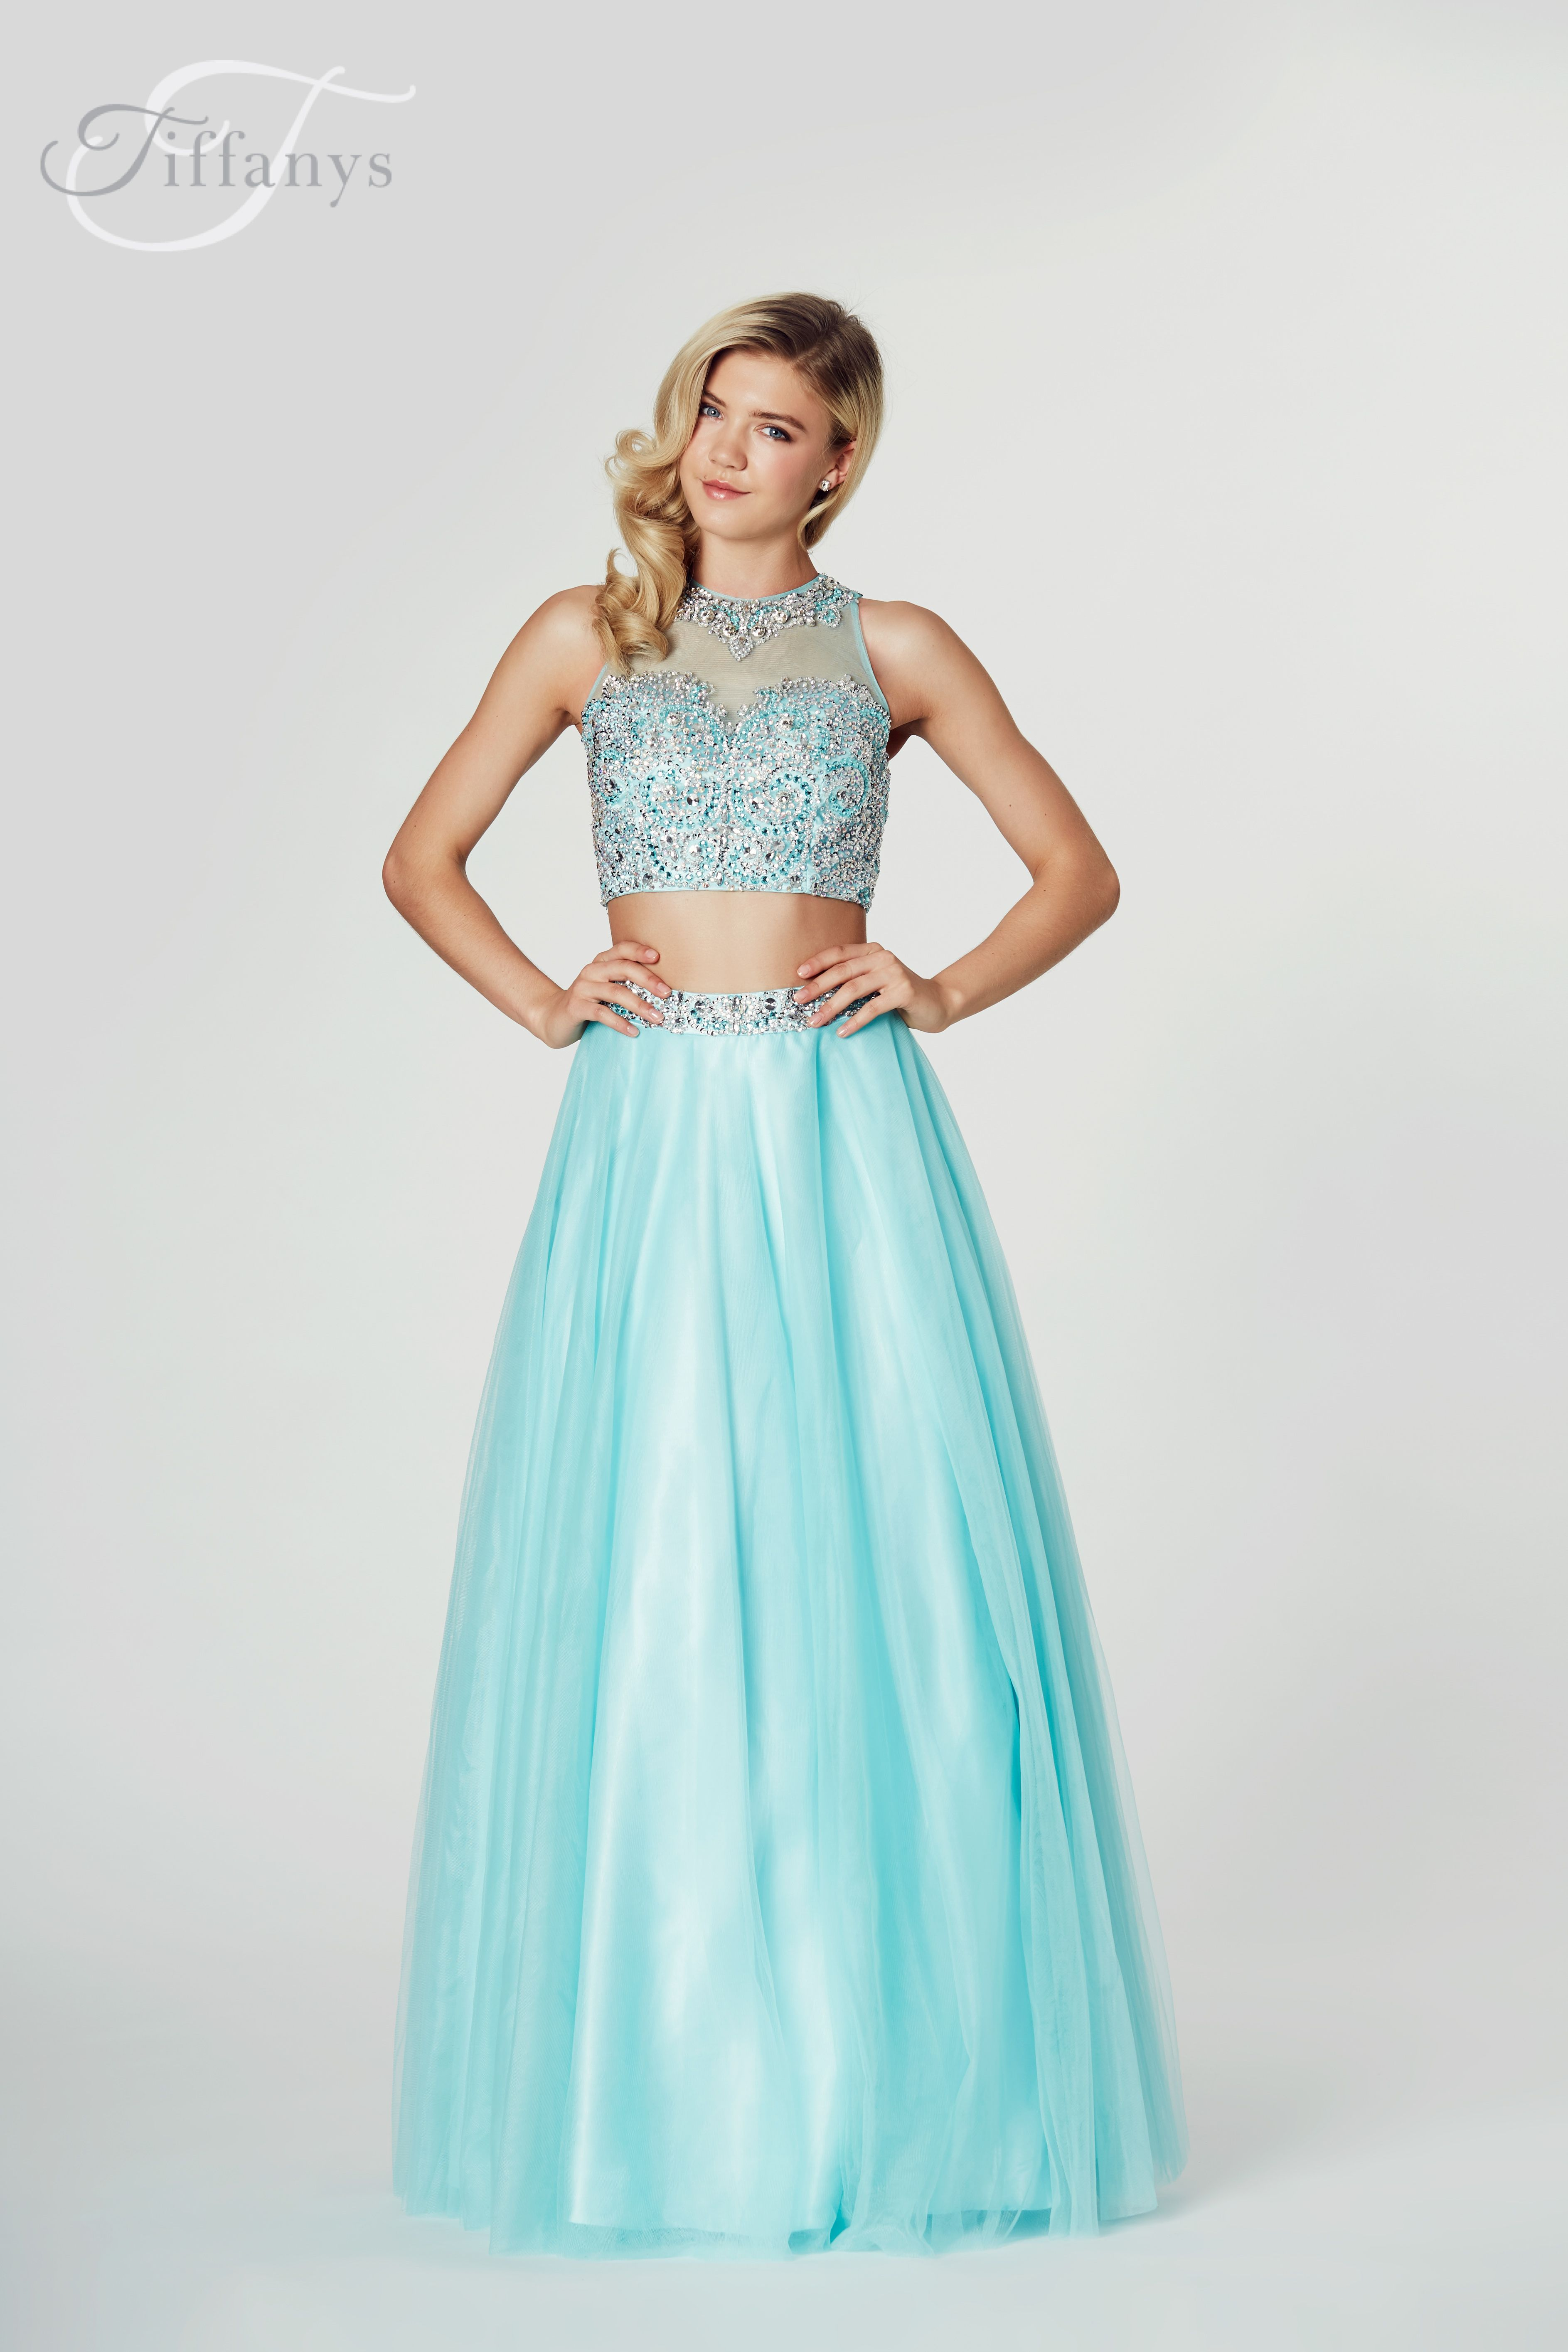 TIFFANYSPROM #PROM #MACEY Tiffanys - Macey. Available in Aqua, Royal ...